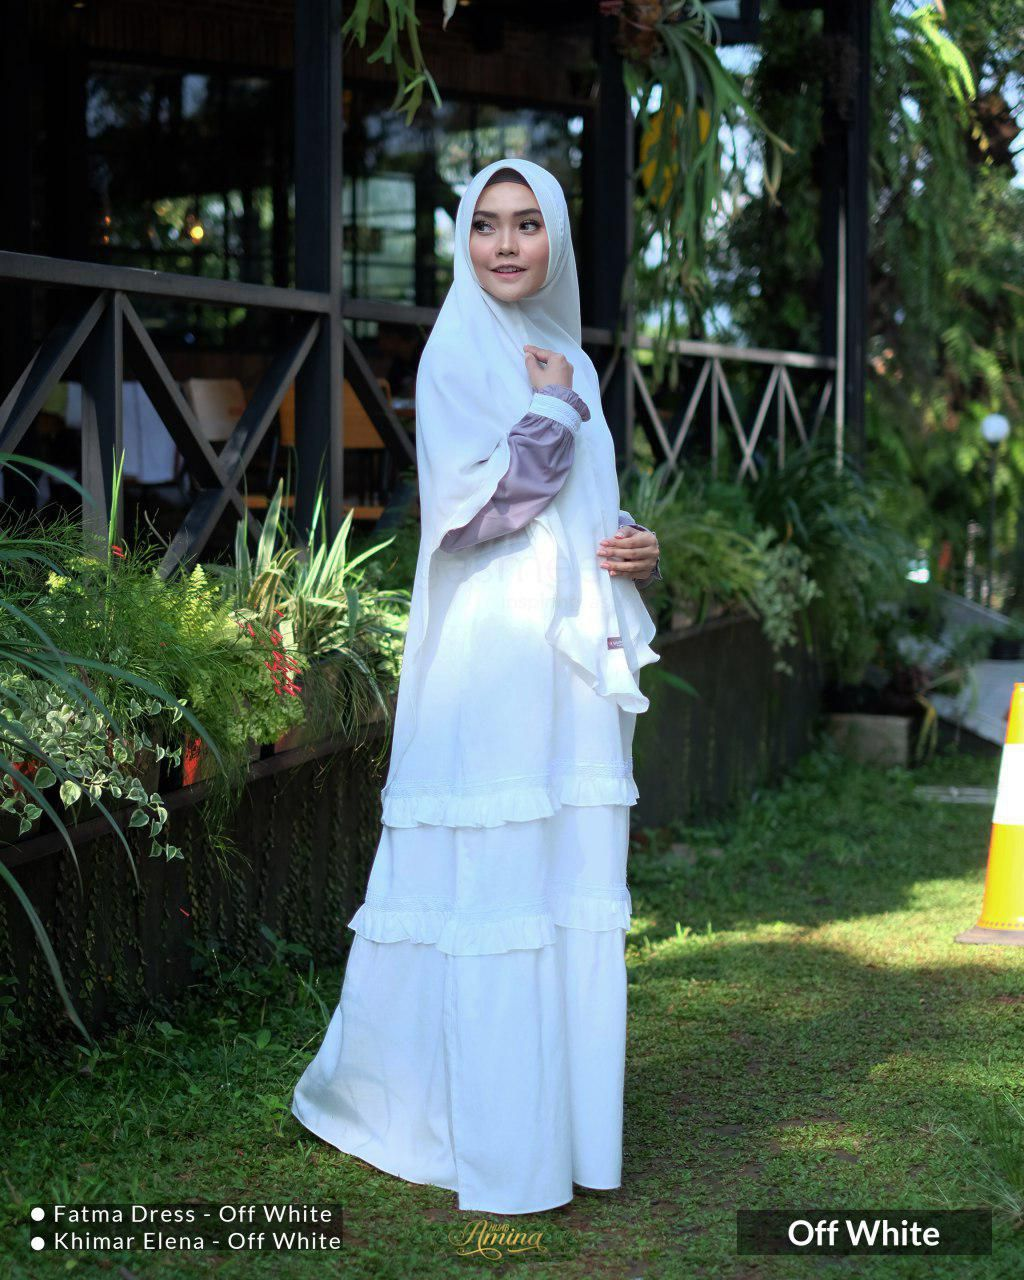 Fatma Dress – Off White